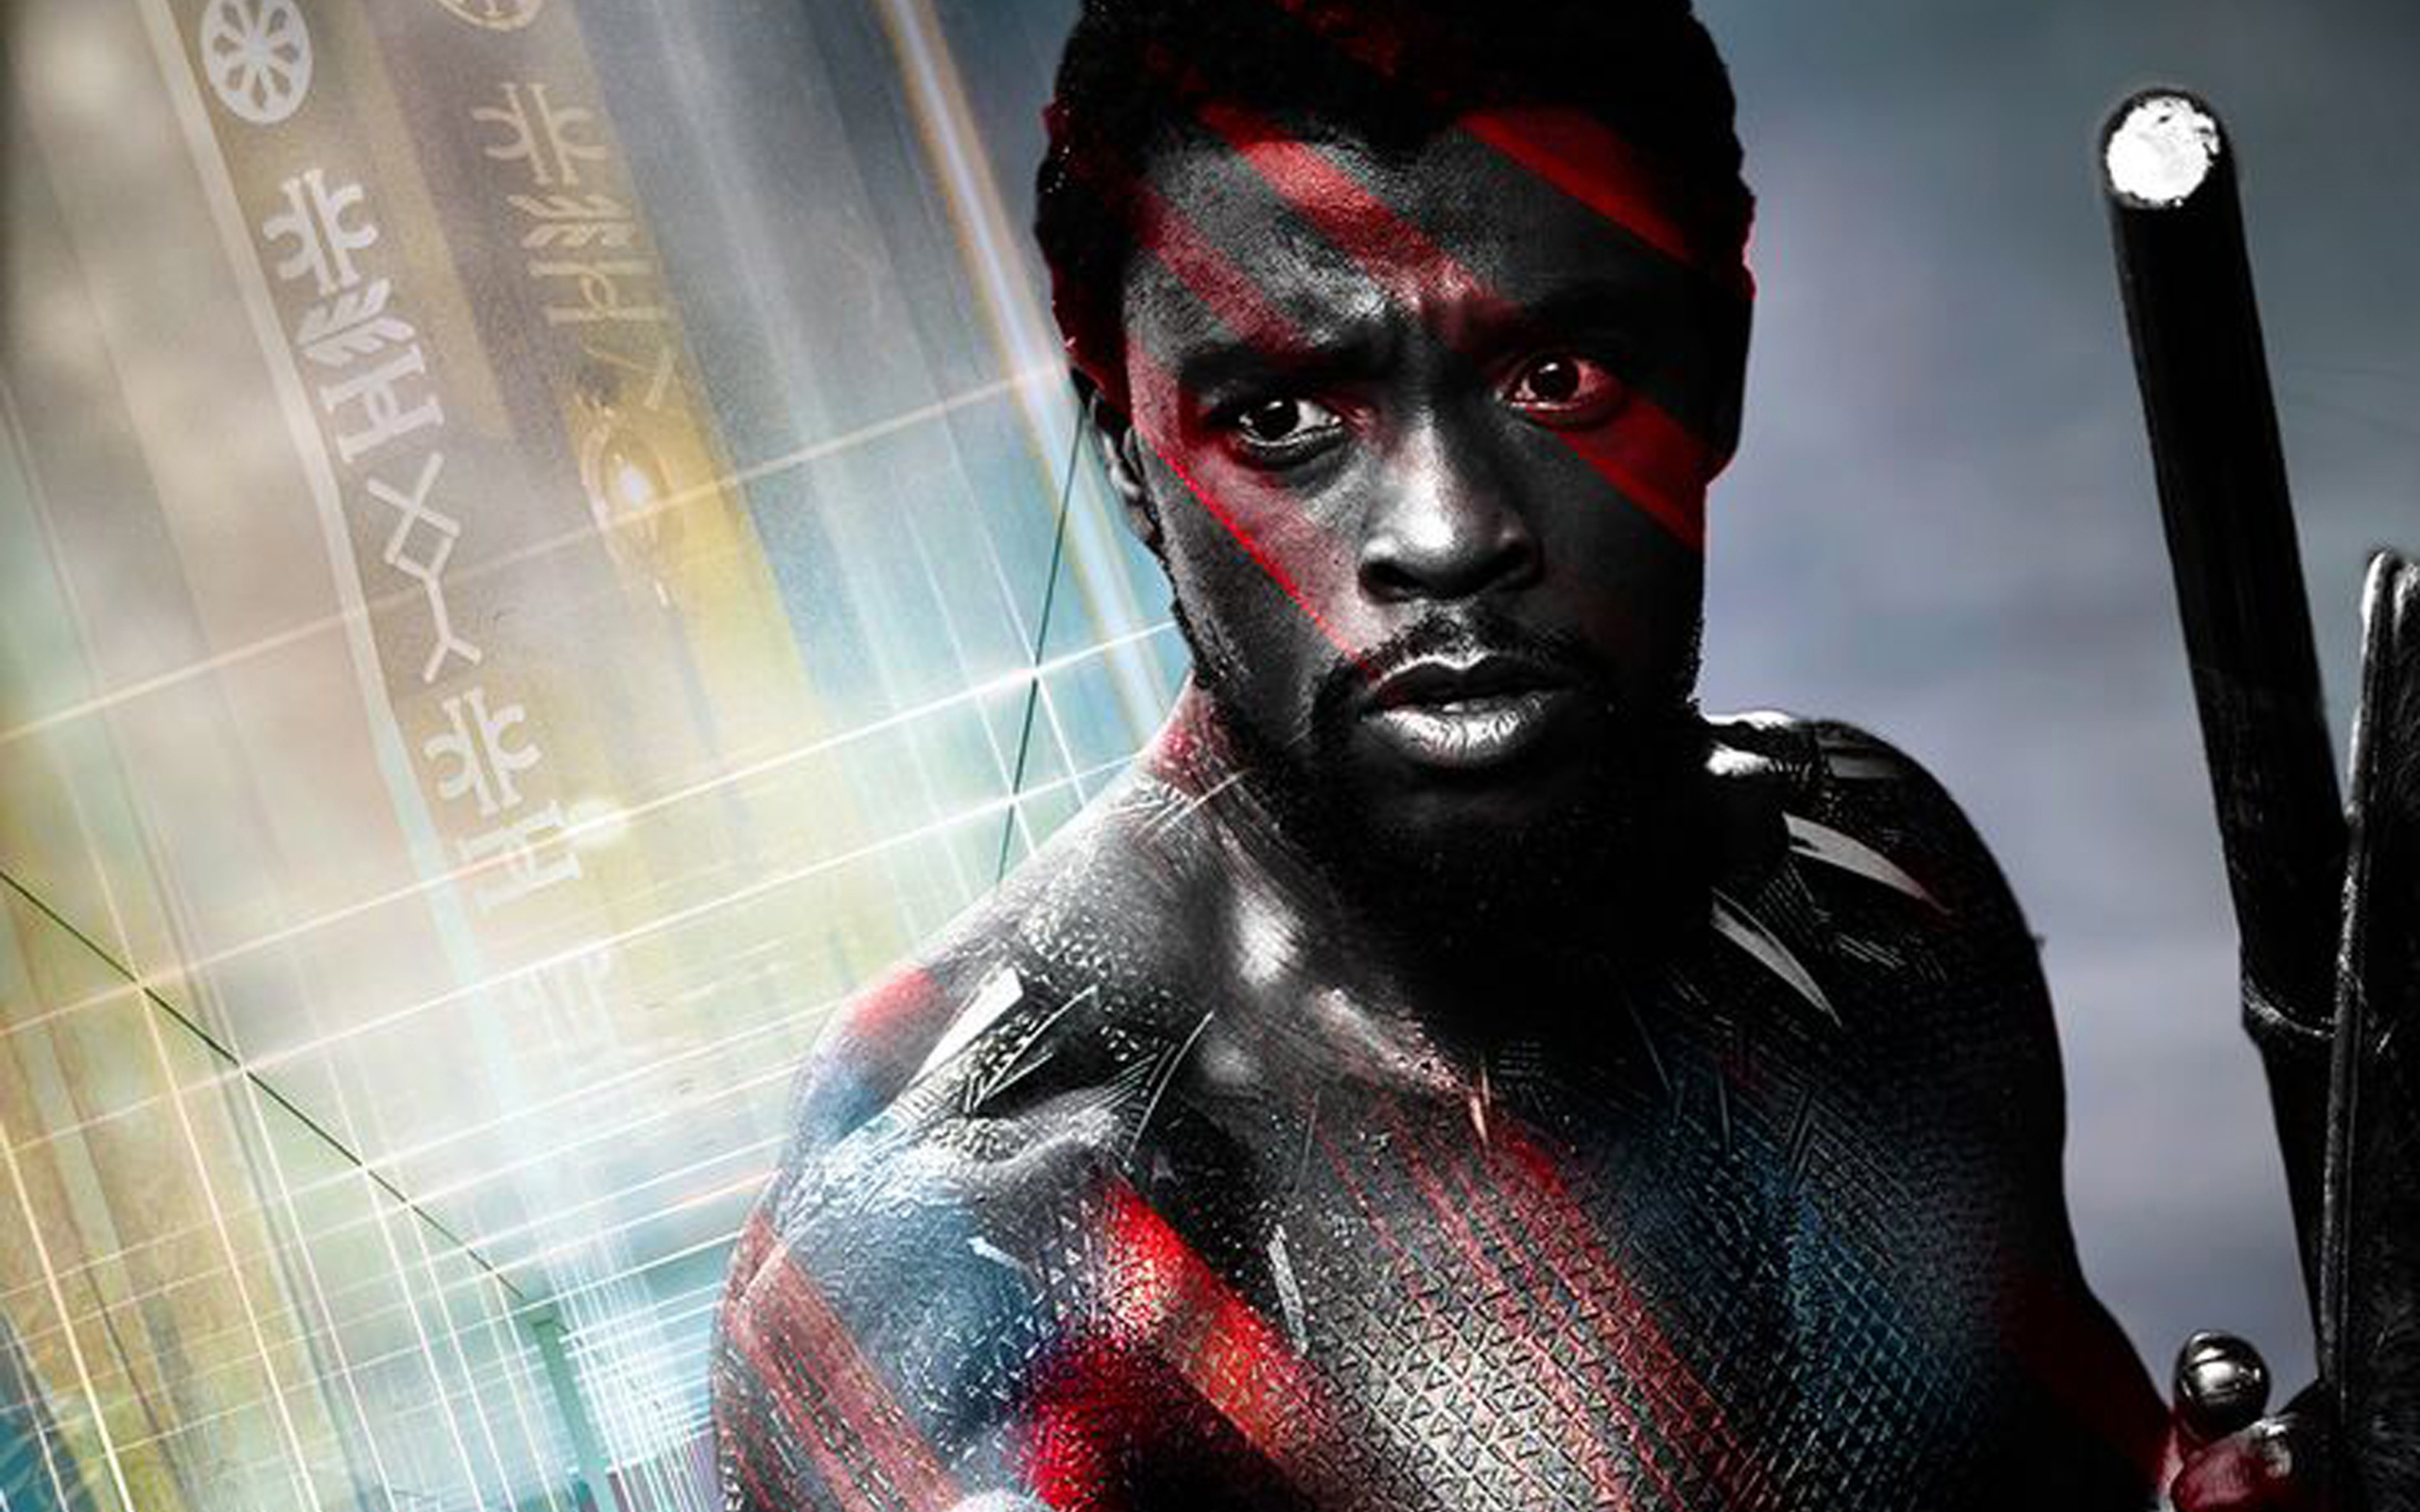 2160x3840 Chadwick Boseman As Black Panther 2018 Movie Sony Xperia X Xz Z5 Premium Wallpaper Hd Movies 4k Wallpapers Images Photos And Background